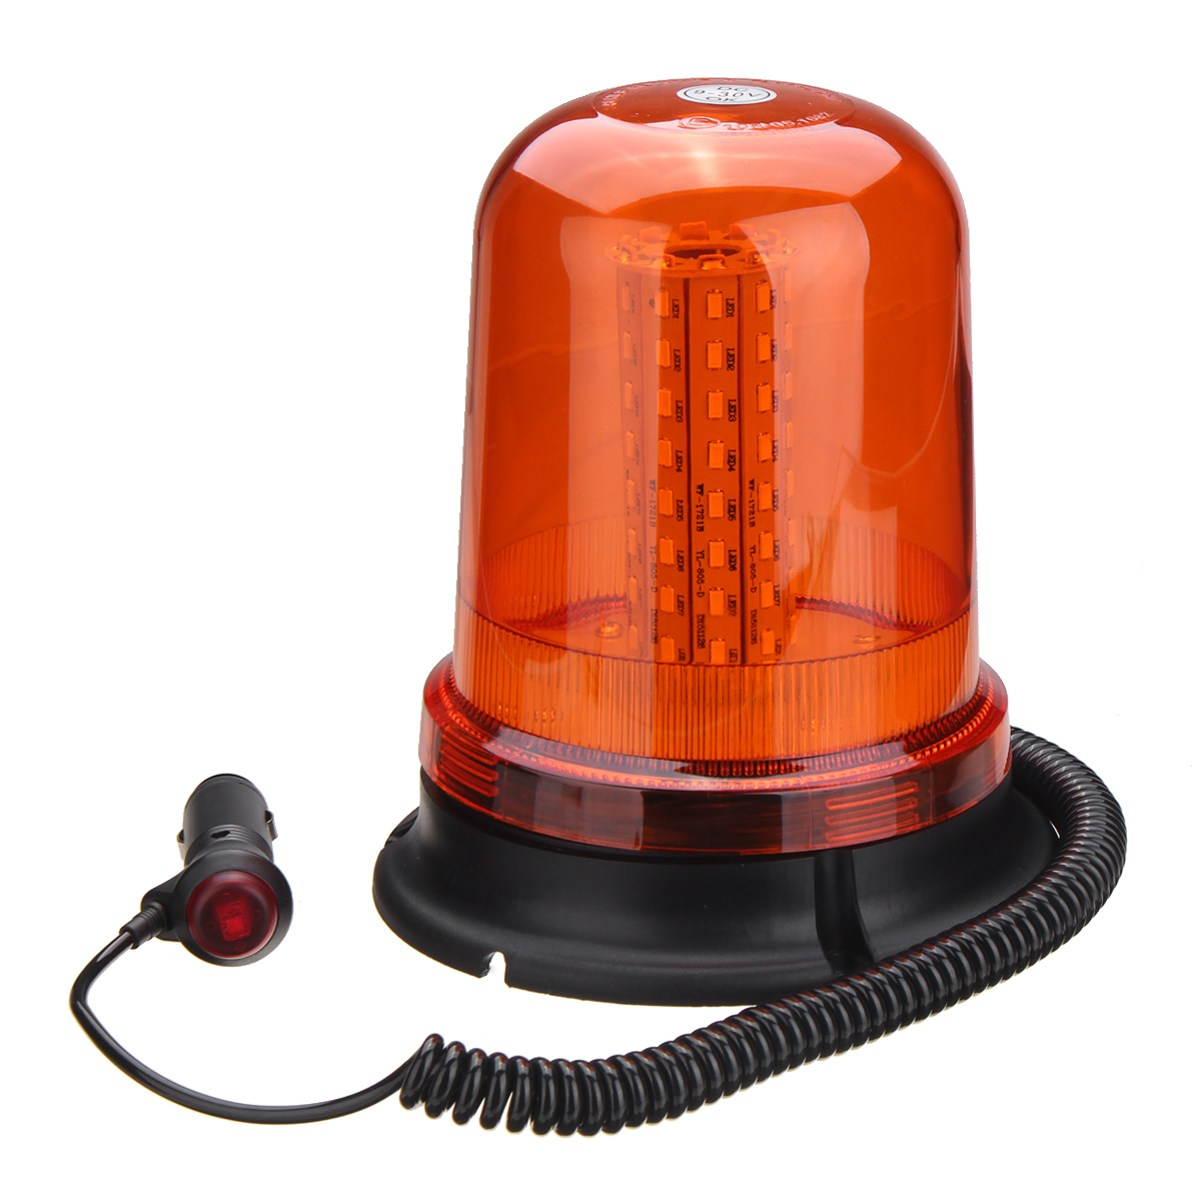 NEW 80 LED Magnetic Mount Rotating Flashing Amber Dome Beacon Recovery Warning Light Roadway Safety 10 led led beacon magnetic bolt recovery flashing warning strobe light lightbar amber